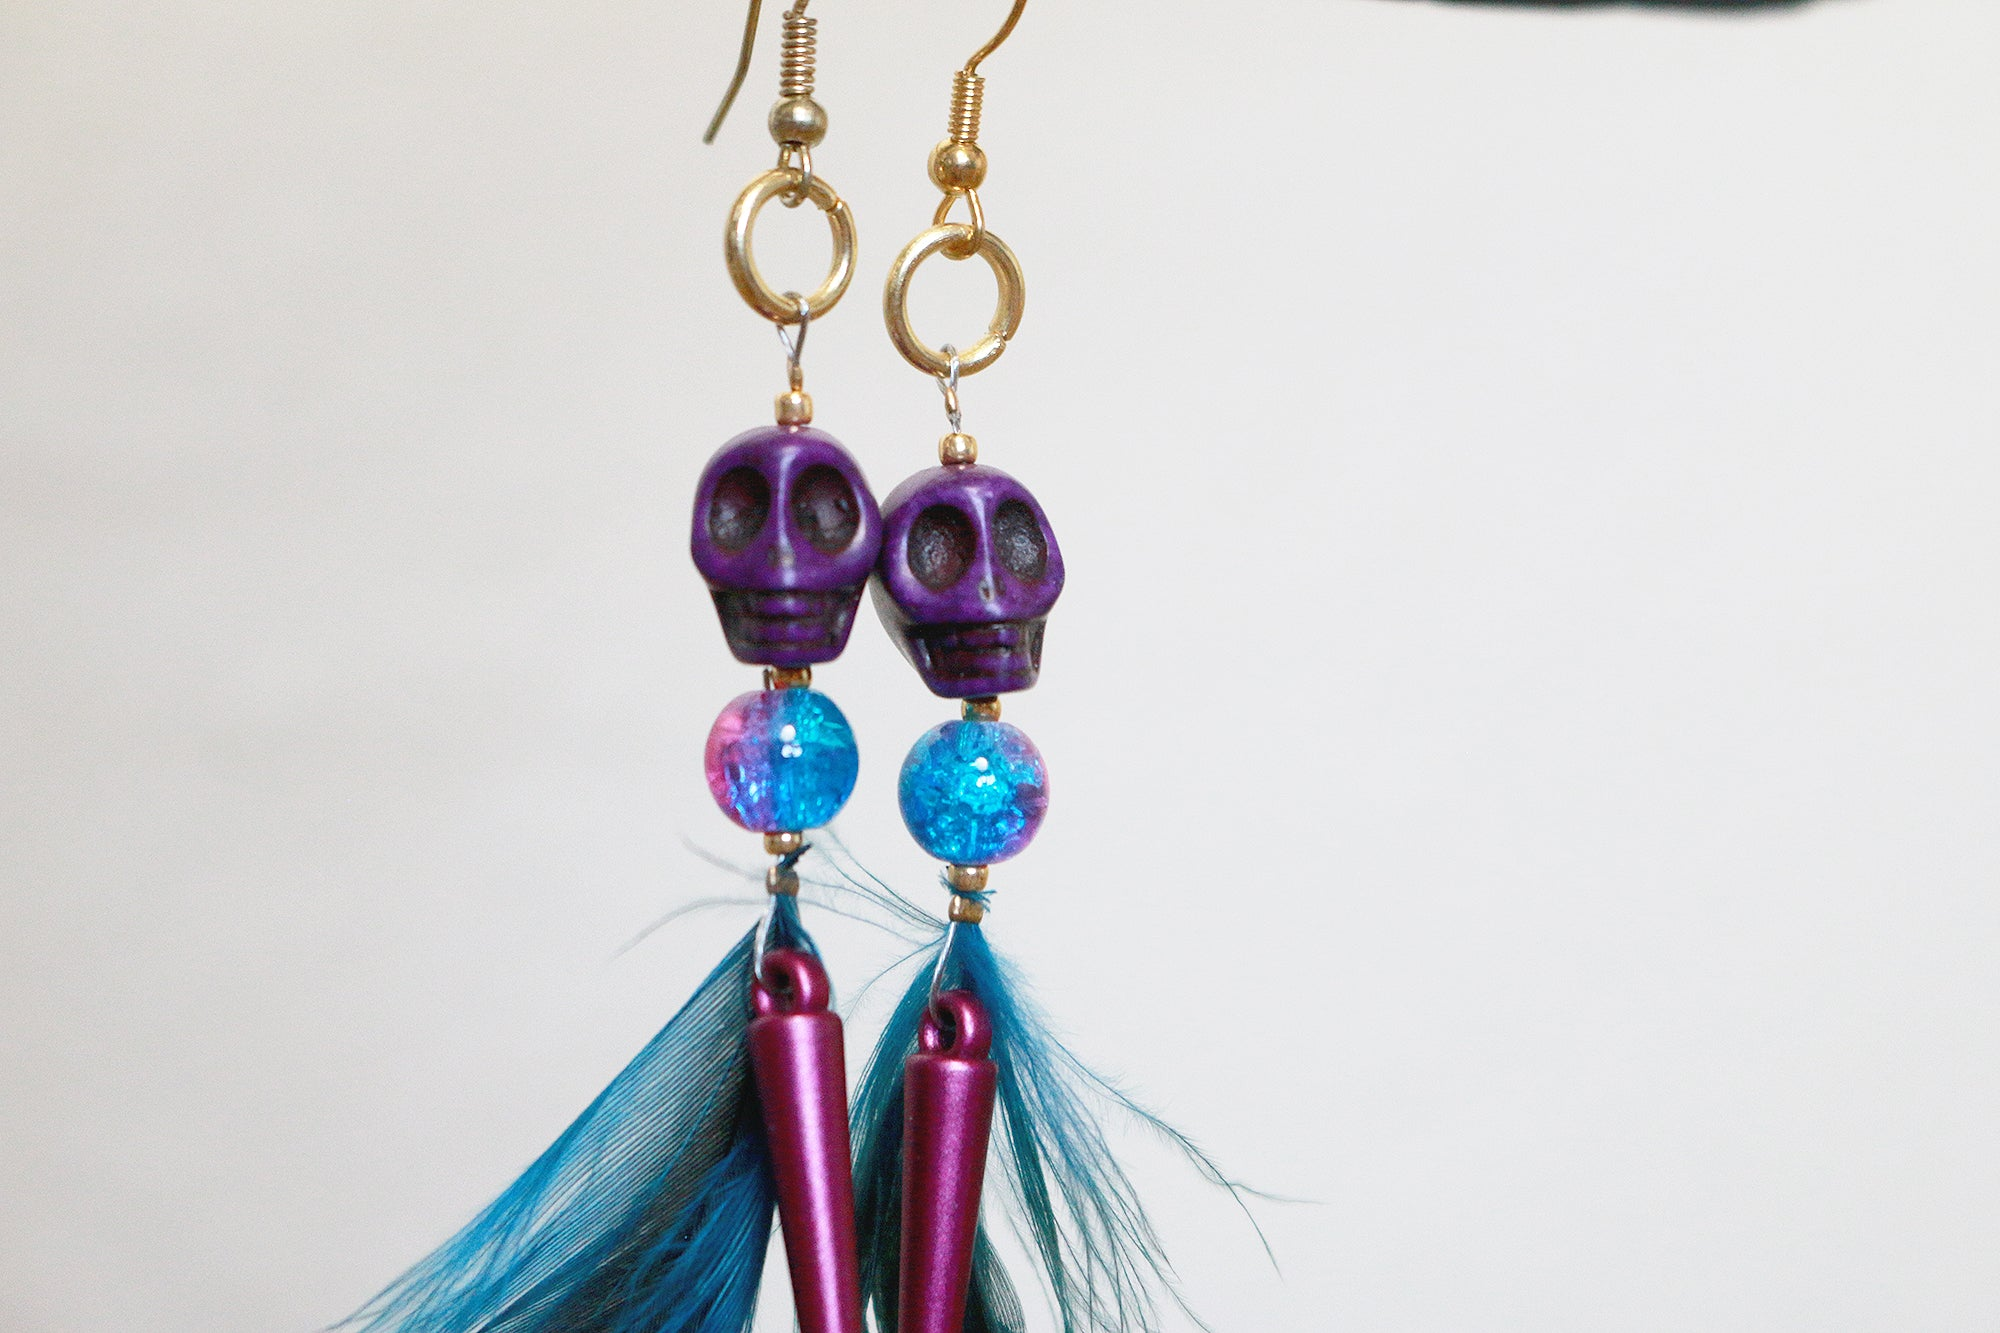 Spike howlite skull feathered earrings